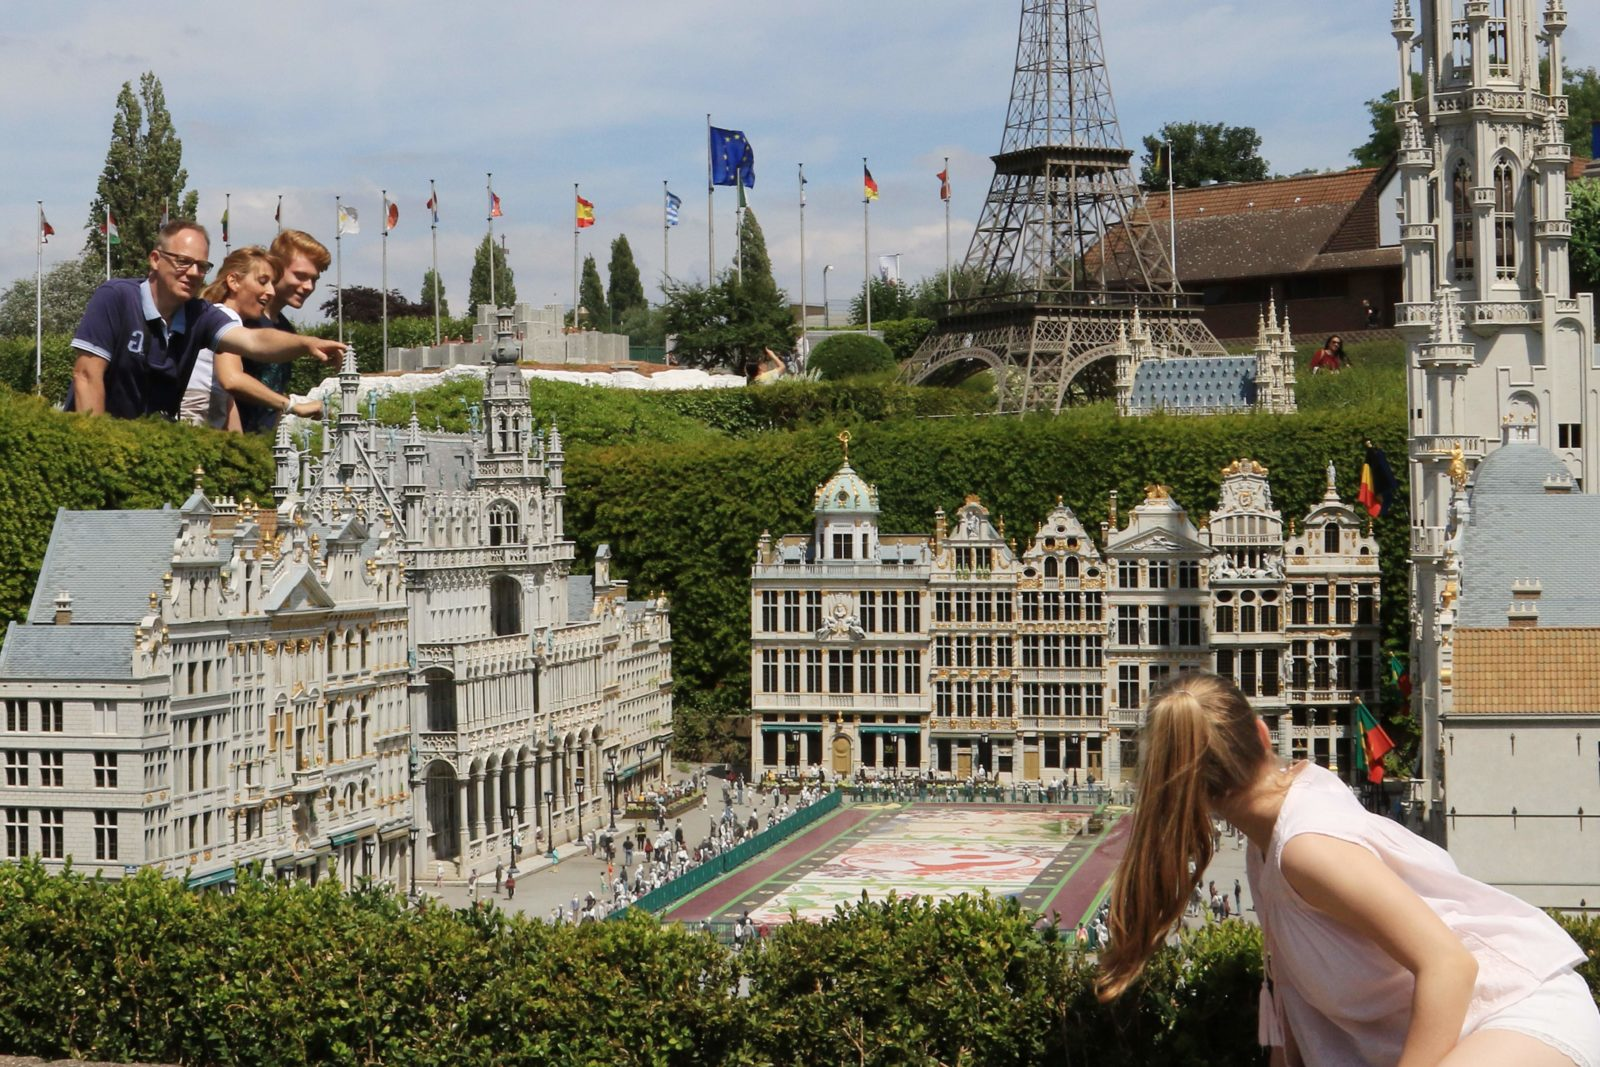 The President Brussels Hotel - Mini Europe